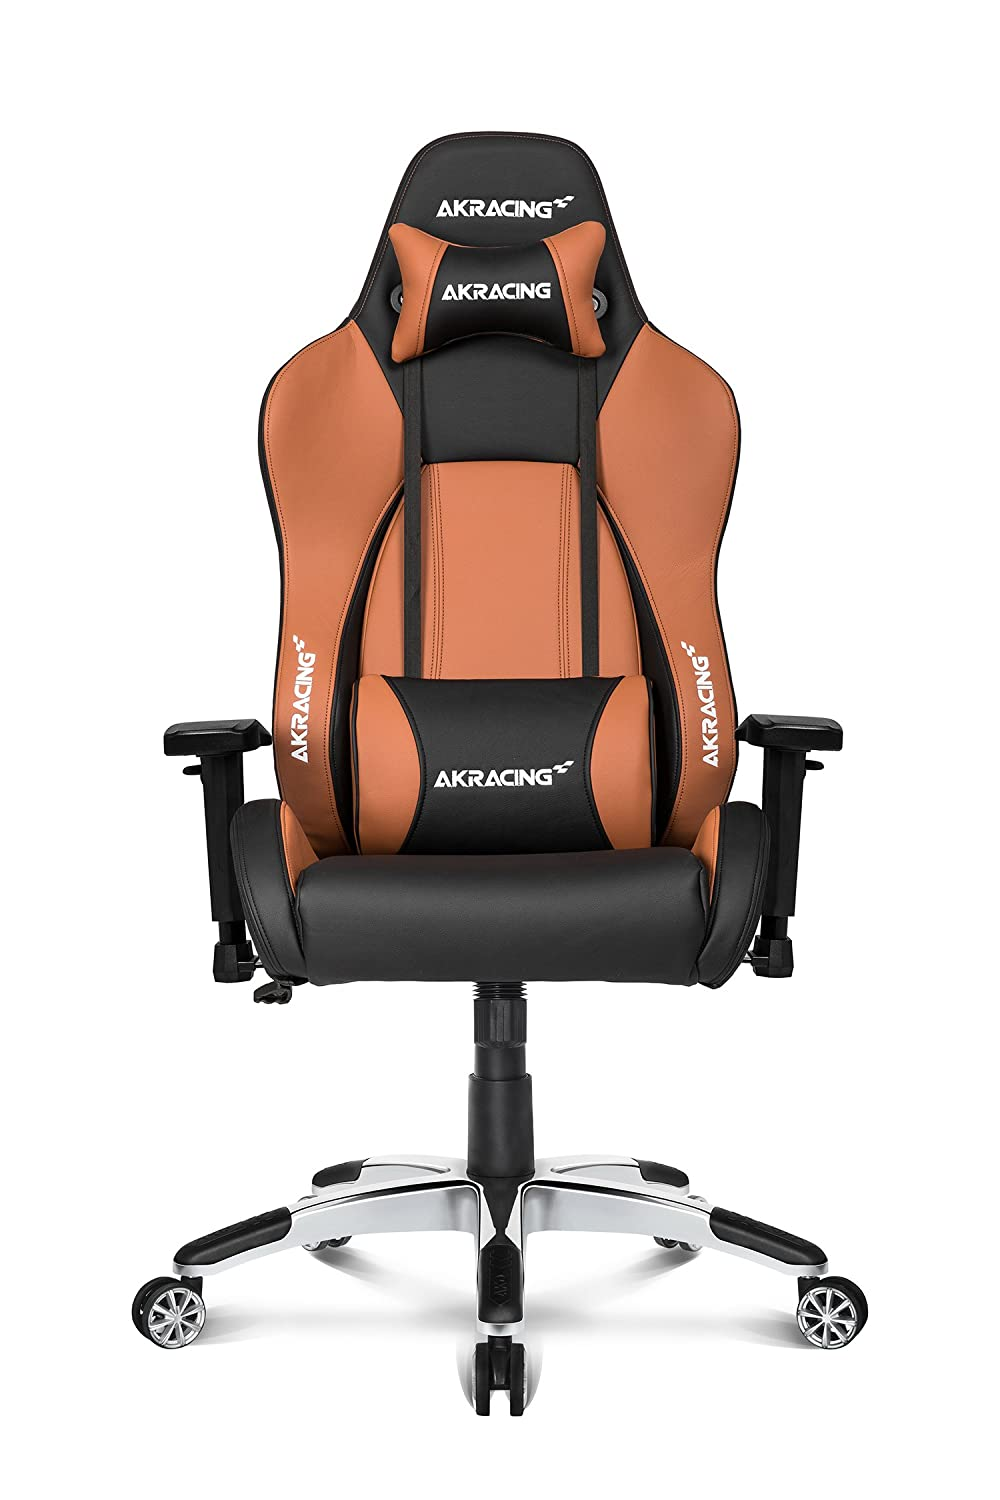 Groovy Akracing Core Series Ex Gaming Chair With High Wide Gmtry Best Dining Table And Chair Ideas Images Gmtryco